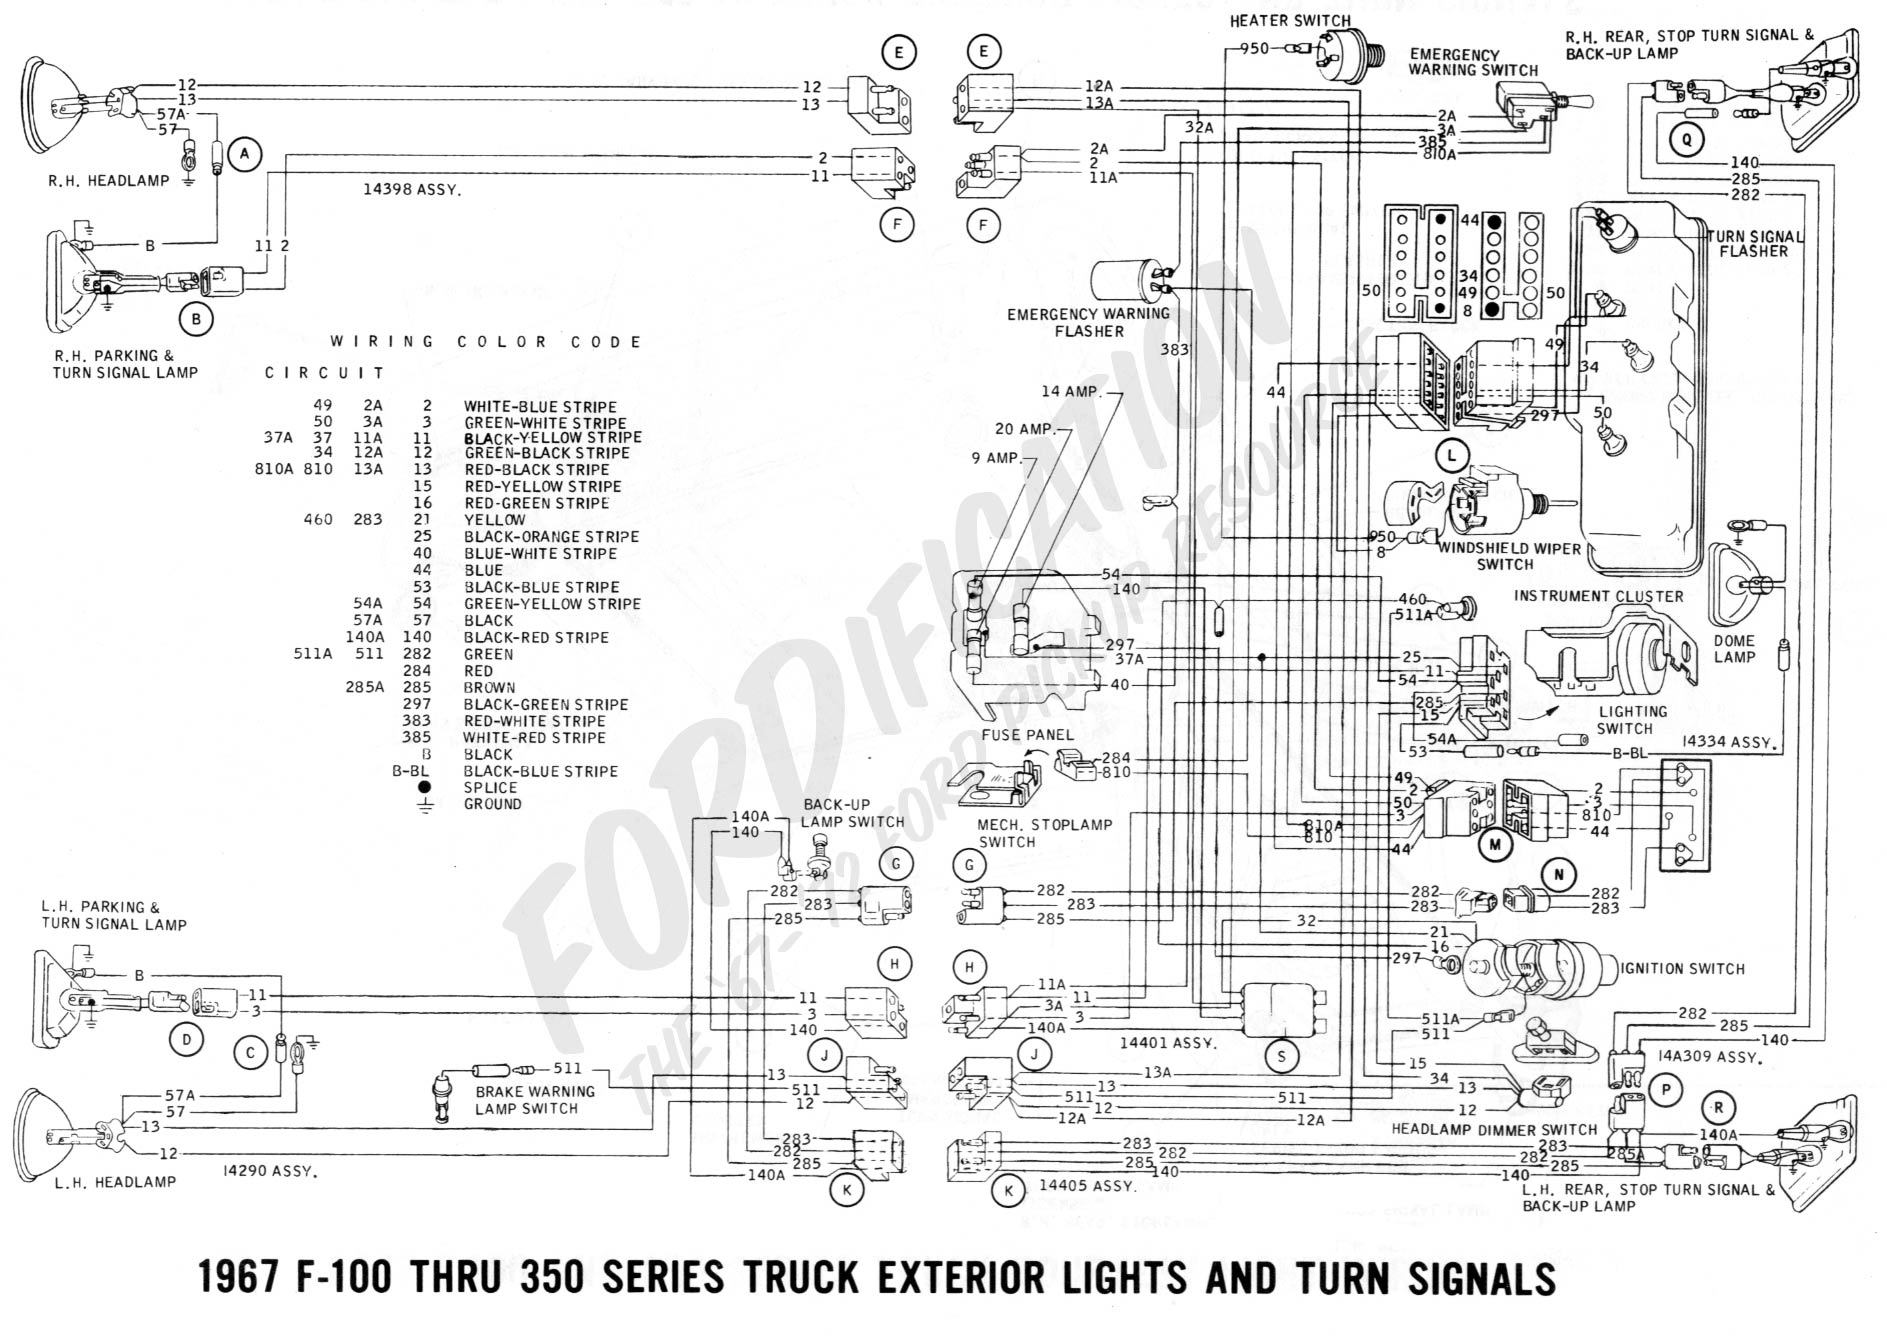 80 1967_exterior_lights_and_turn_signals_page_2_1db6c529c4c9567560e56d6320f993290ba5b803 1967 mustang wiring diagram efcaviation com 1968 ford mustang wiring diagram at n-0.co